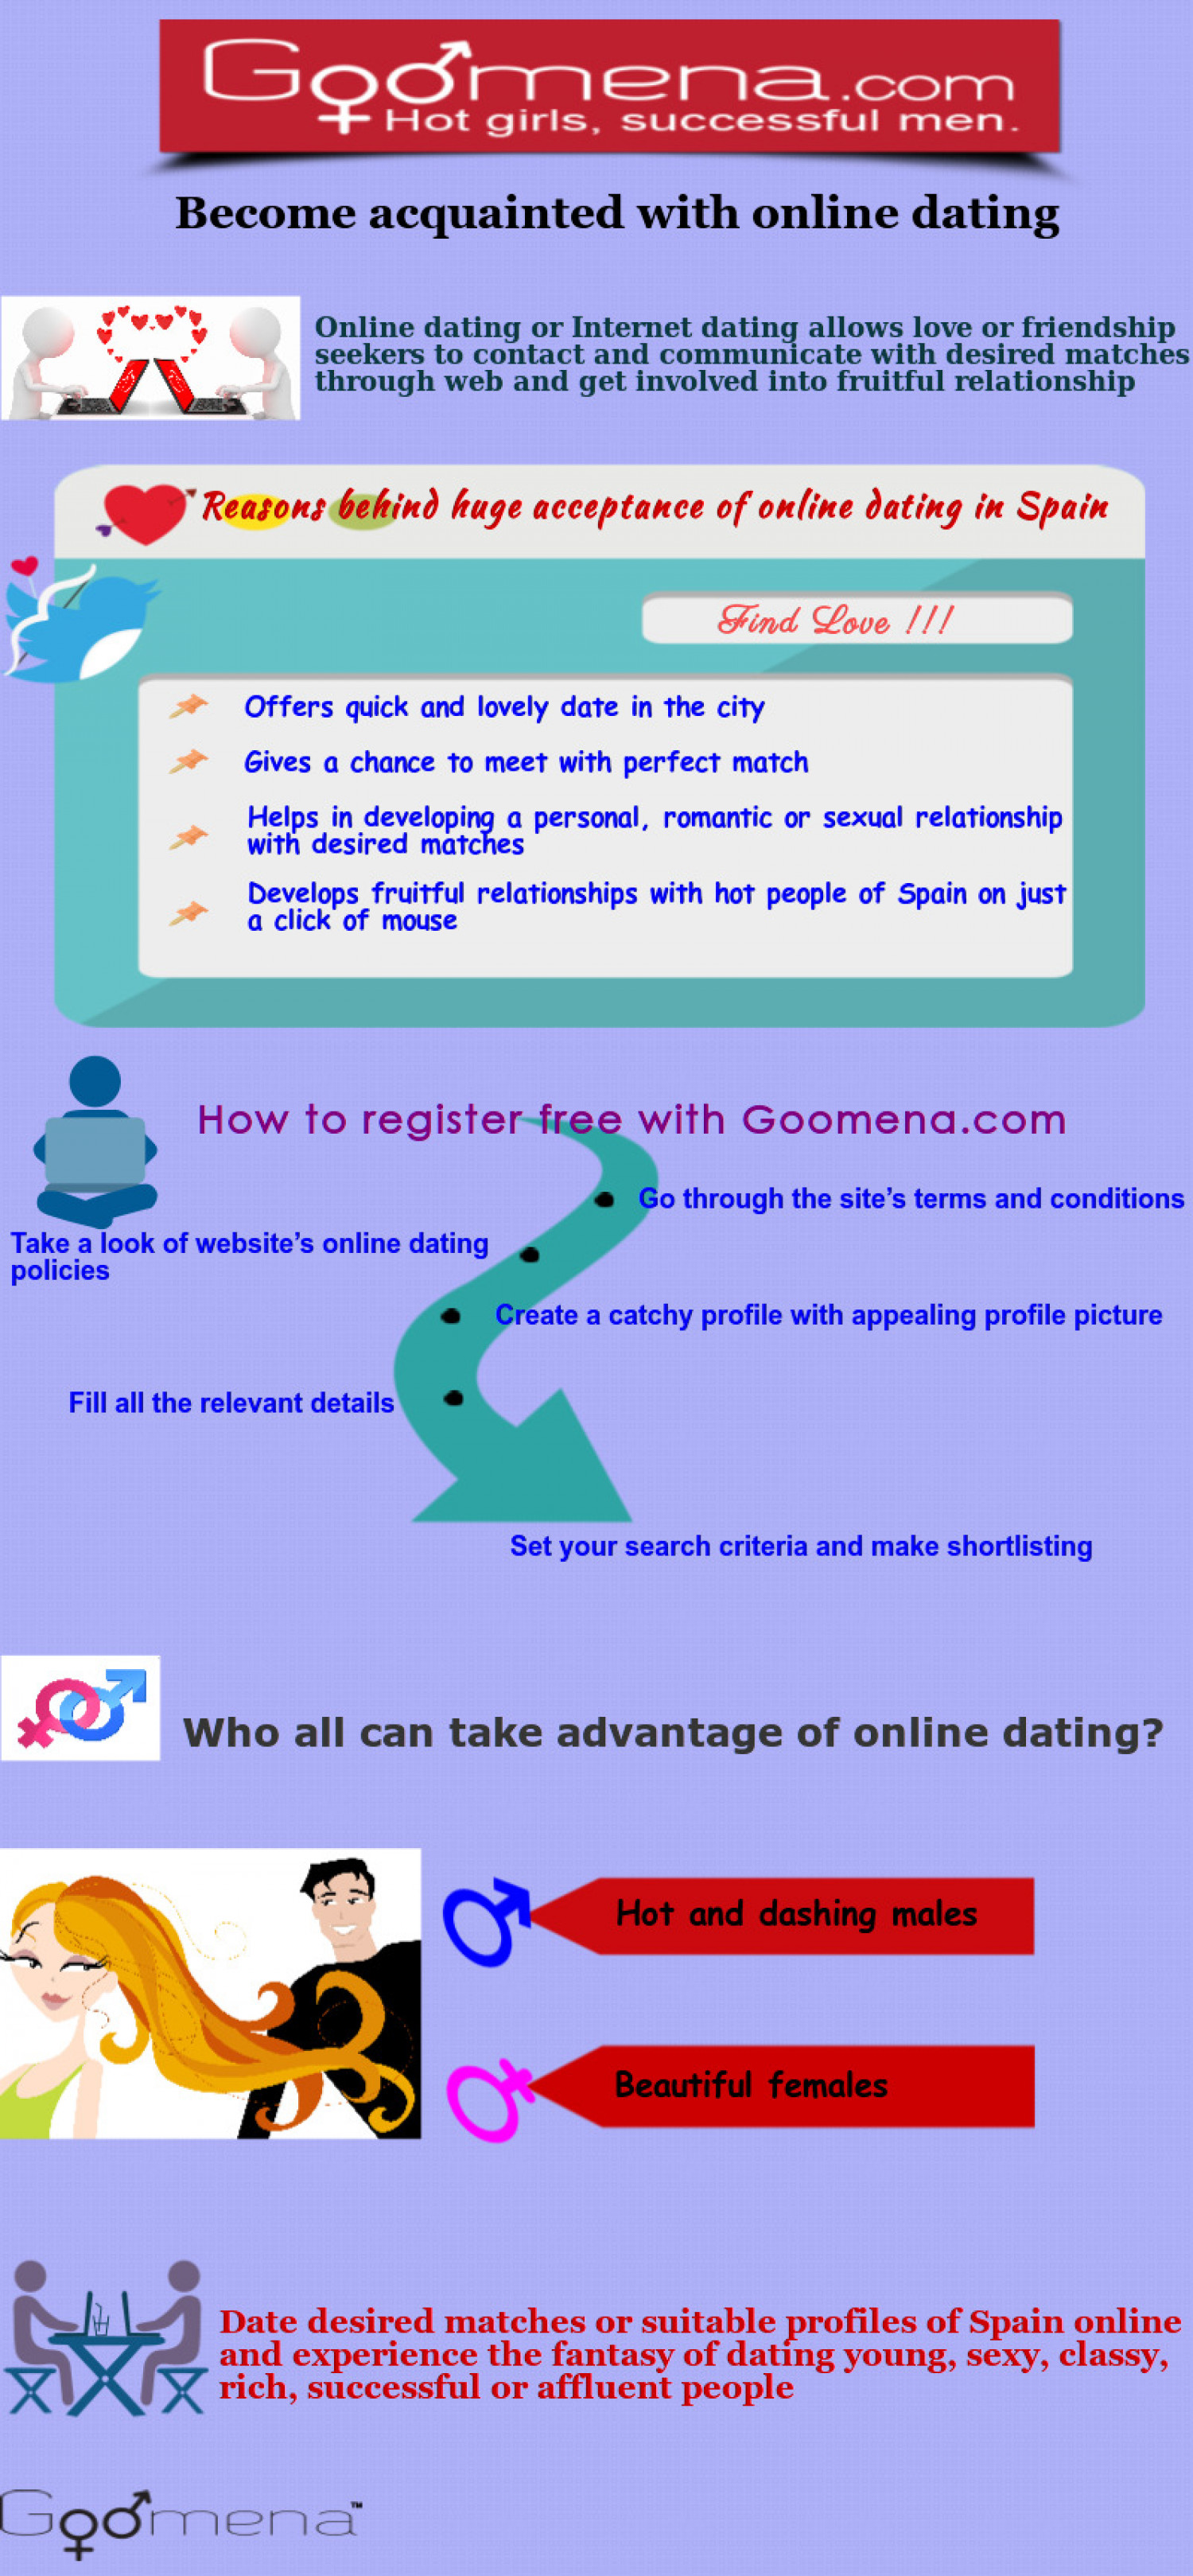 Become acquainted with online dating Infographic